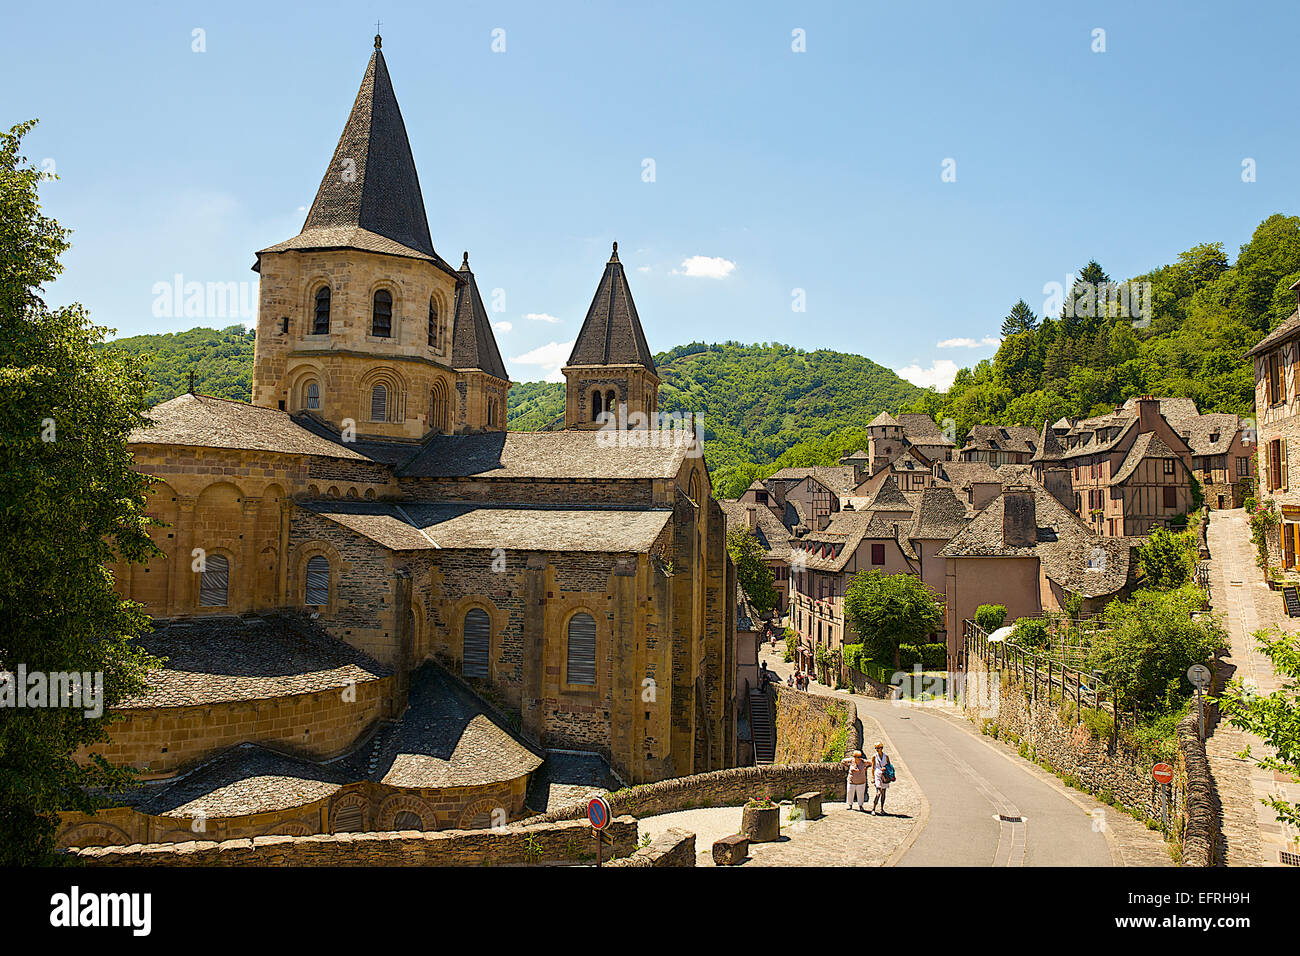 Conques Village, France - Stock Image